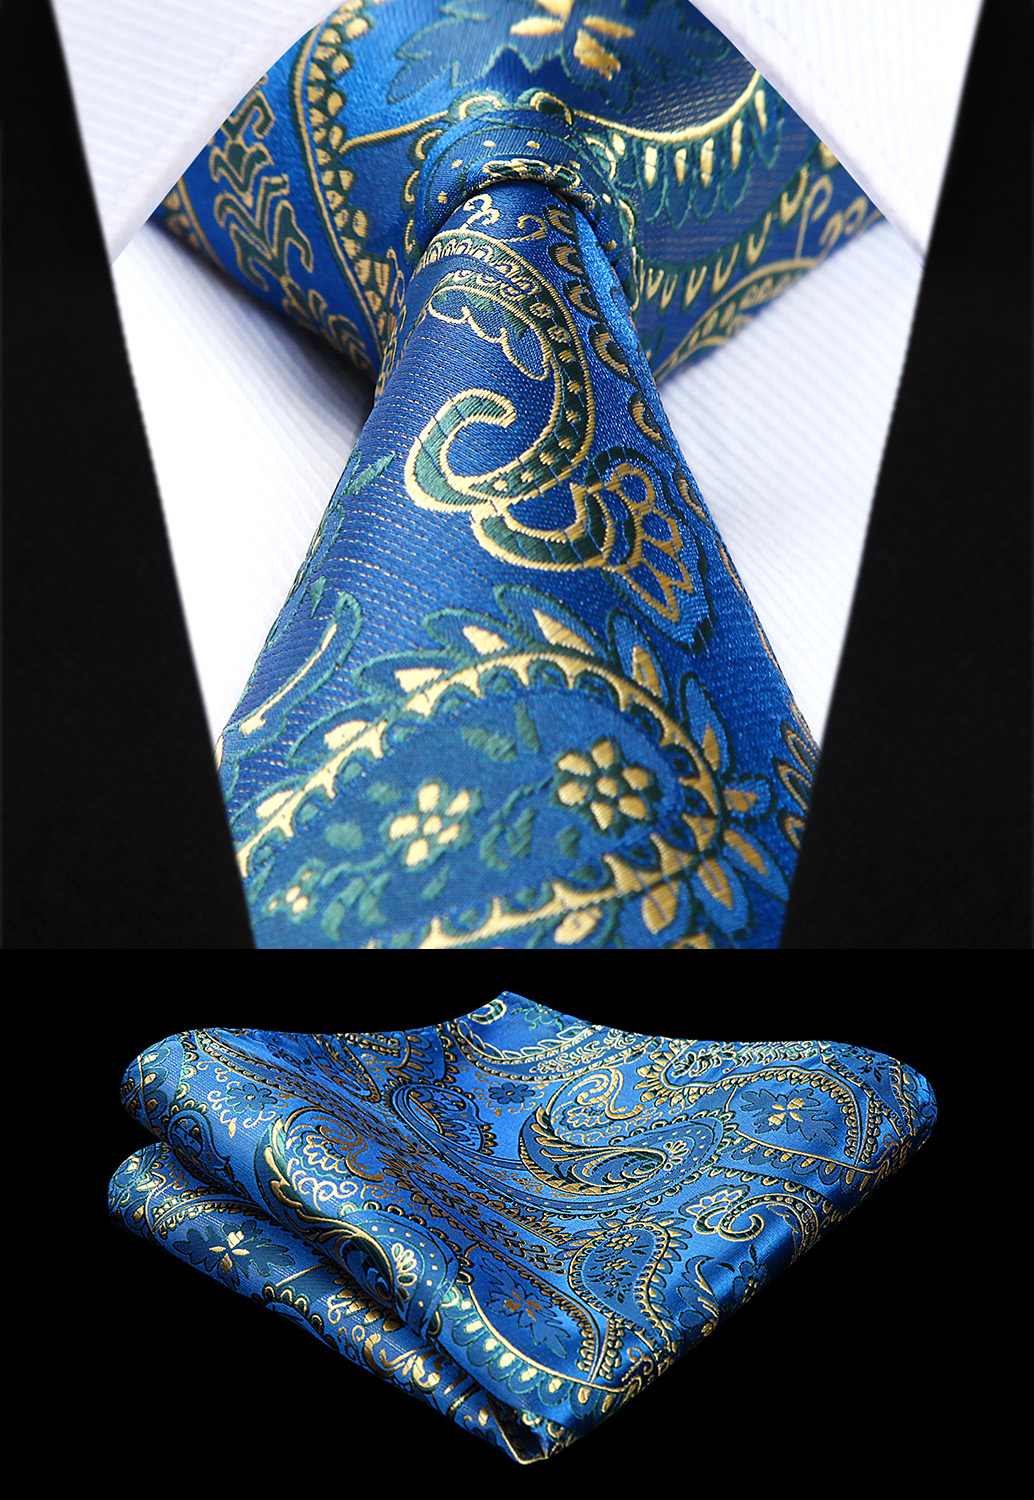 New Floral Paisley Mens Tie Blue Woven Silk Necktie Handkerchief Set TF4015B38S Party Wedding Classic Fashion Pocket Square Tie